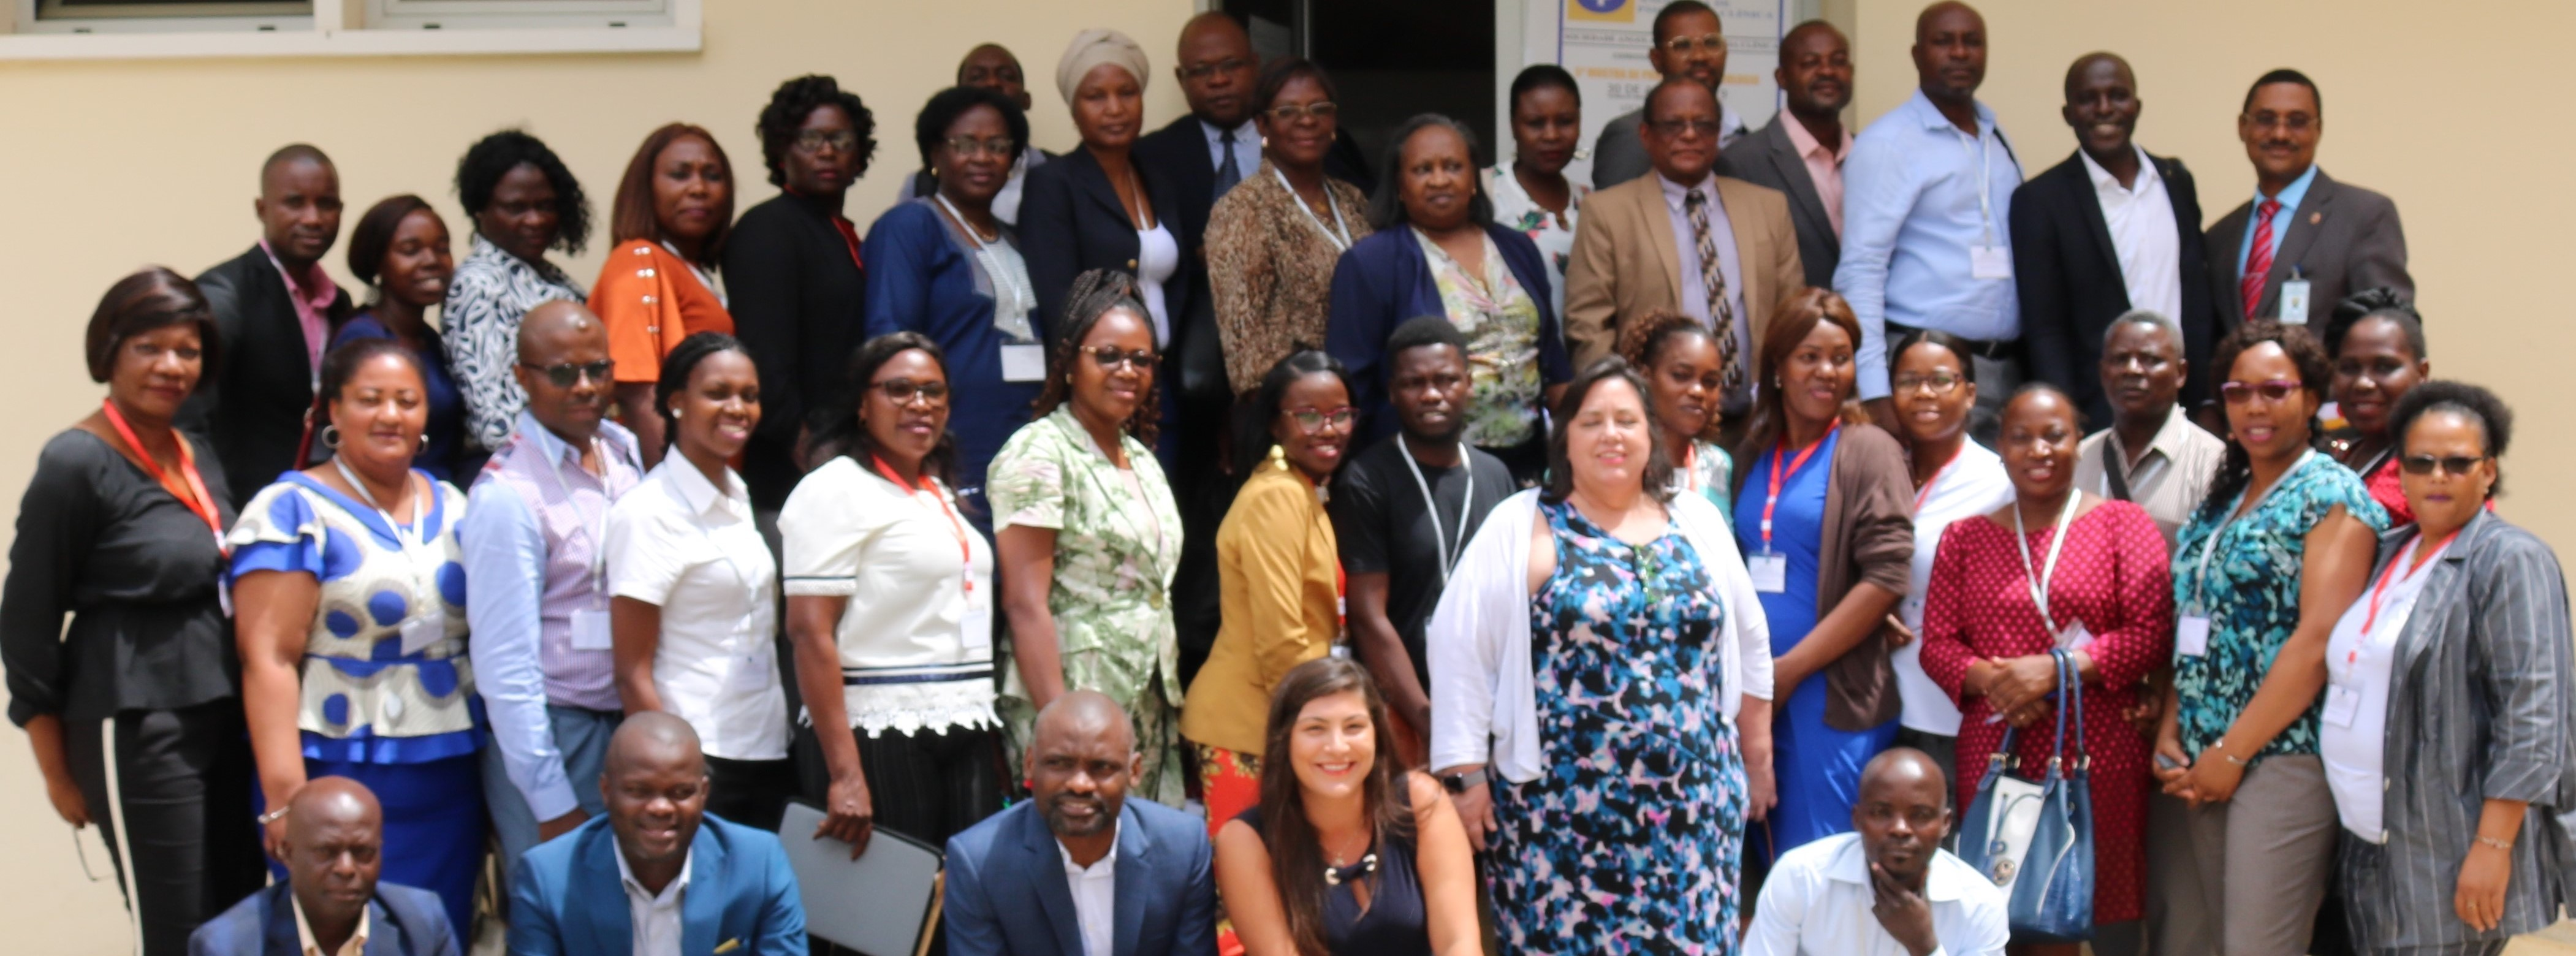 Participants at the course's launch in April, 2019. Photo credit: Julia Perri/GHSC-PSM